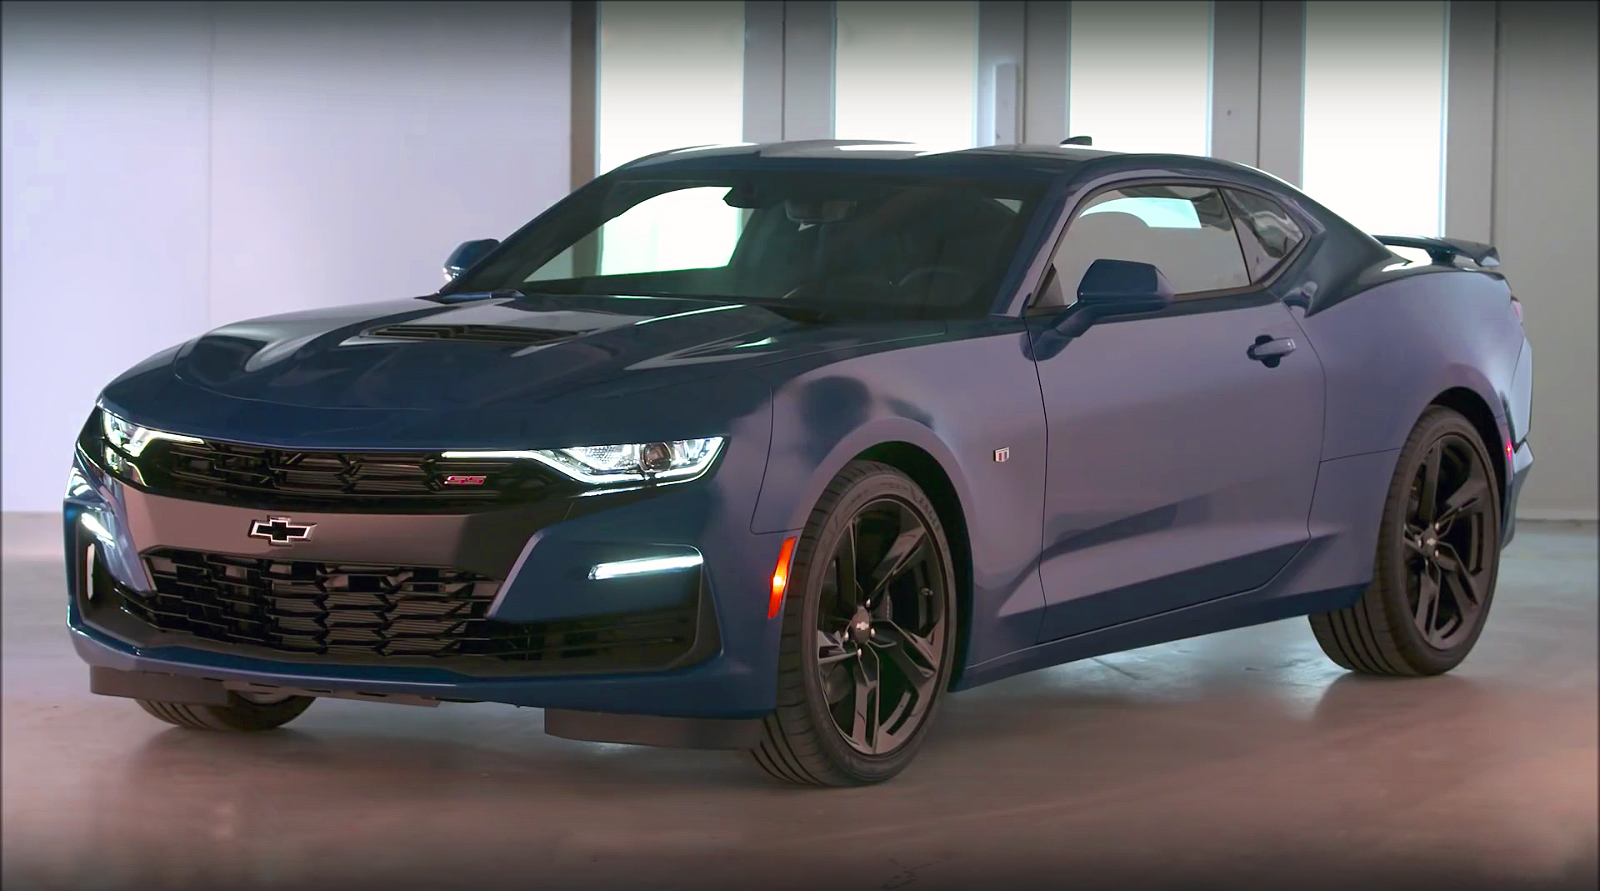 The New 2019 Chevrolet Camaro - Is it Good or Not?